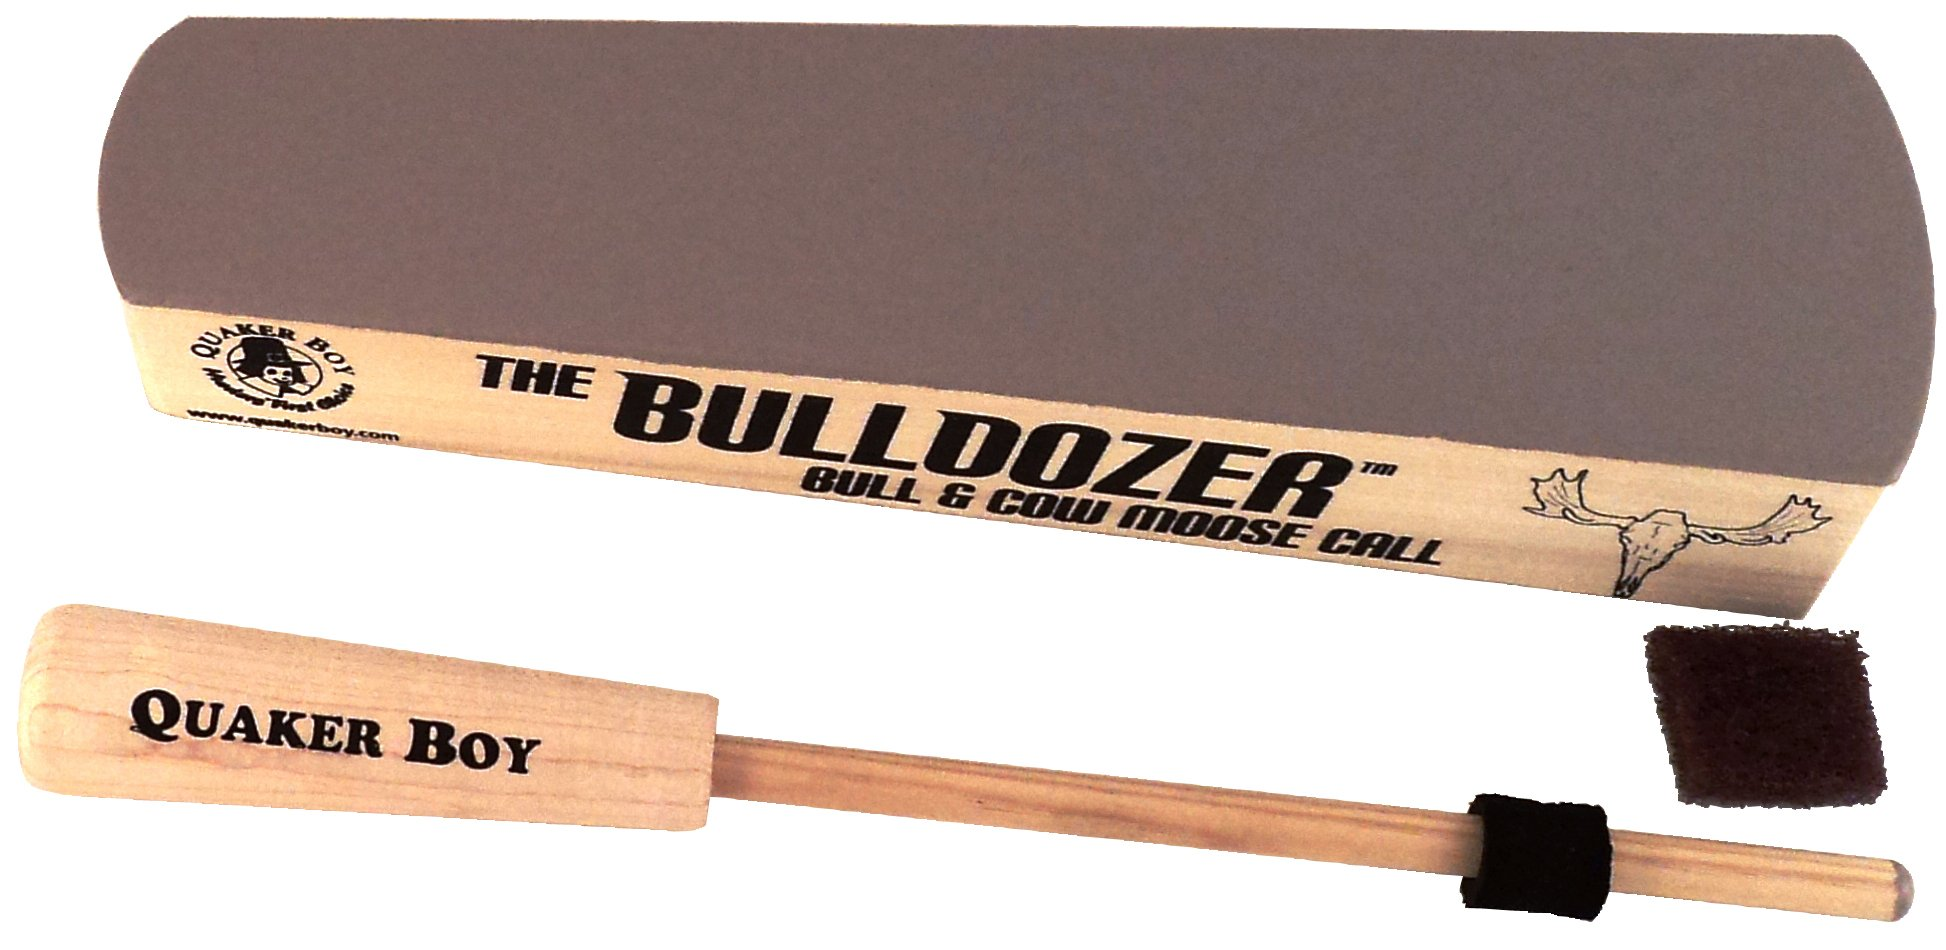 Quaker Boy Bulldozer Moose Call